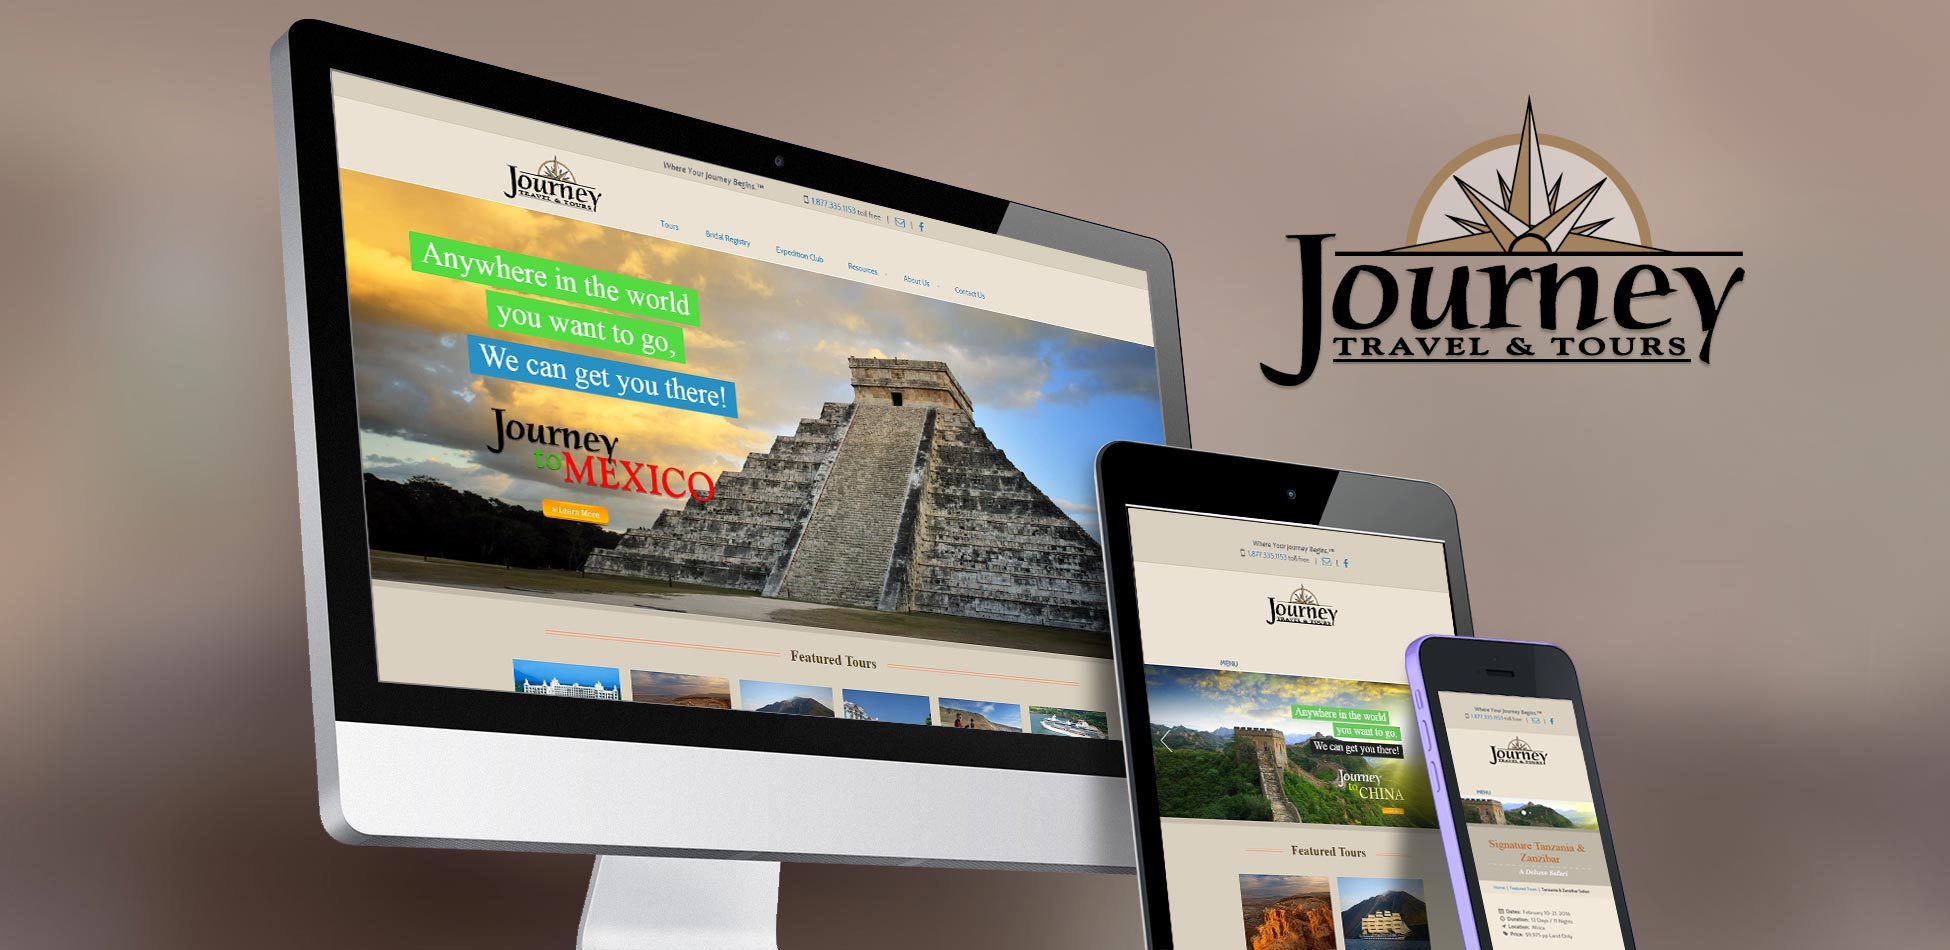 Journey Travel & Tours